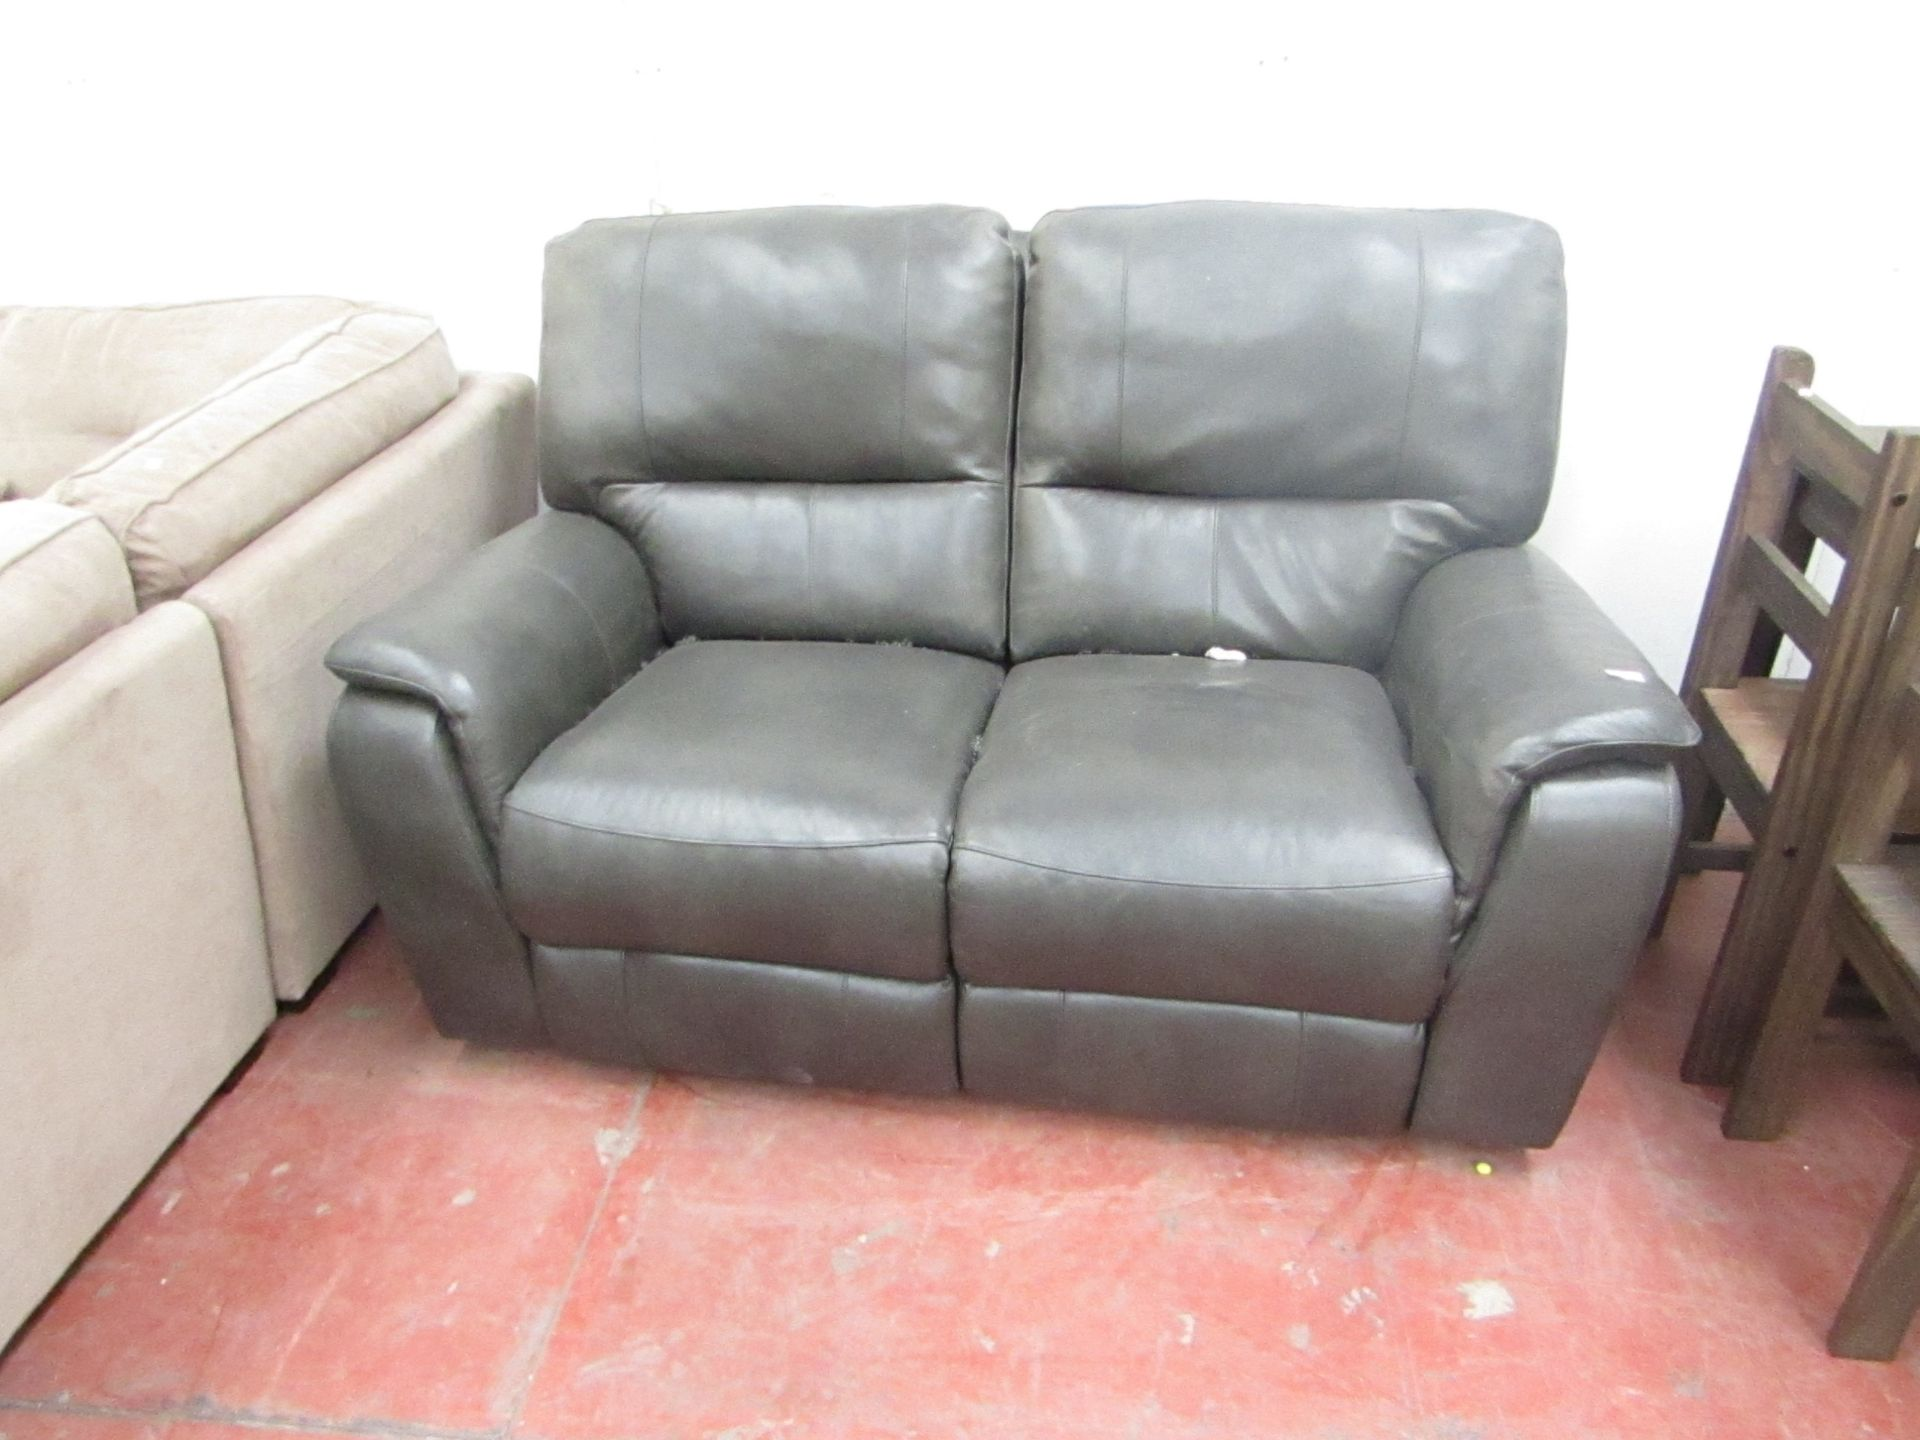 Lot 18 - Costco Itailian Leather Grey/Black 2 seater manual reclining sofa, the recline mechanism is in